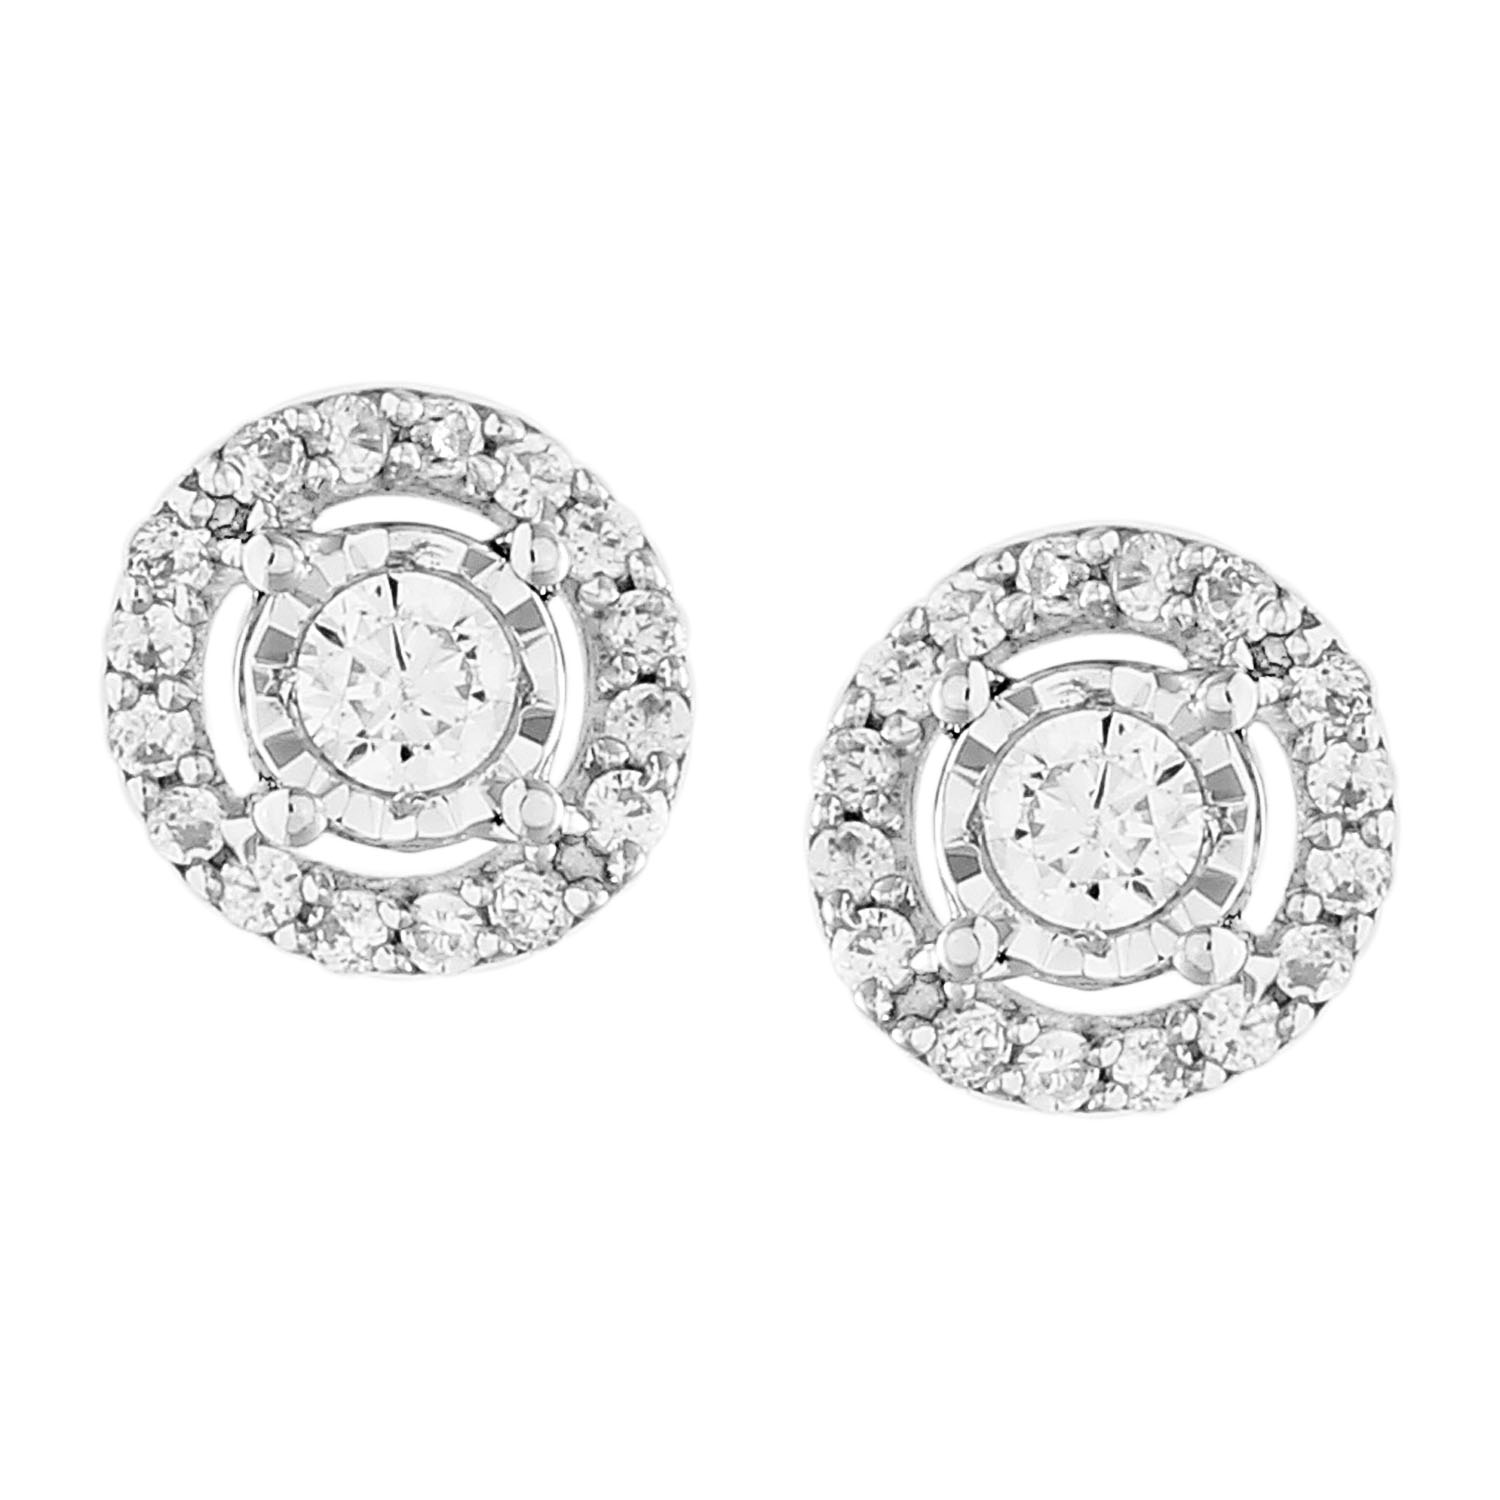 9ct White Gold 0.15 Carat Diamond Earrings with 34 Brilliant Cut Diamonds